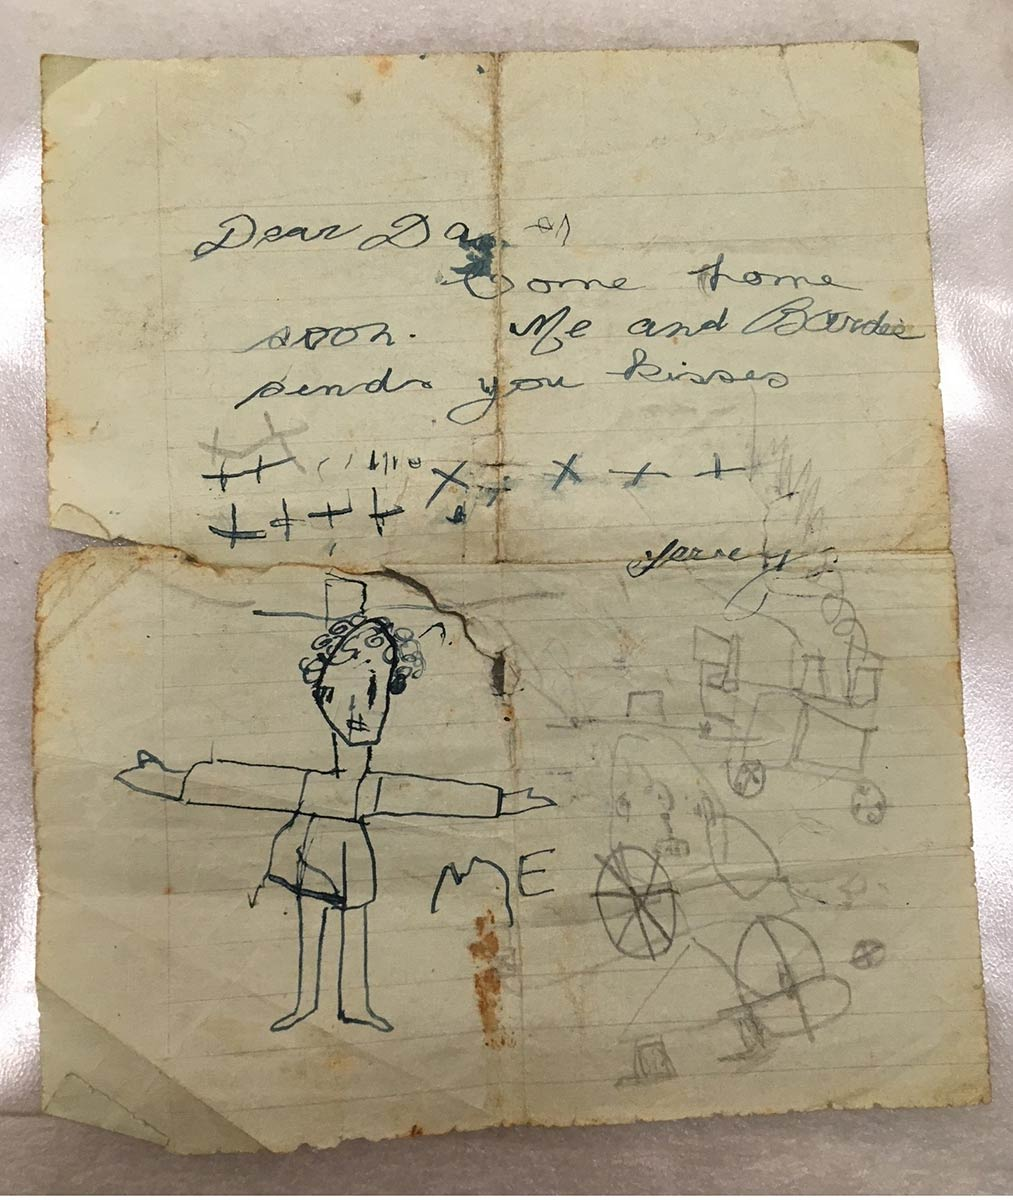 A letter on an old piece of paper with slightly wonky hand-writing and random doodles below. - click to view larger image